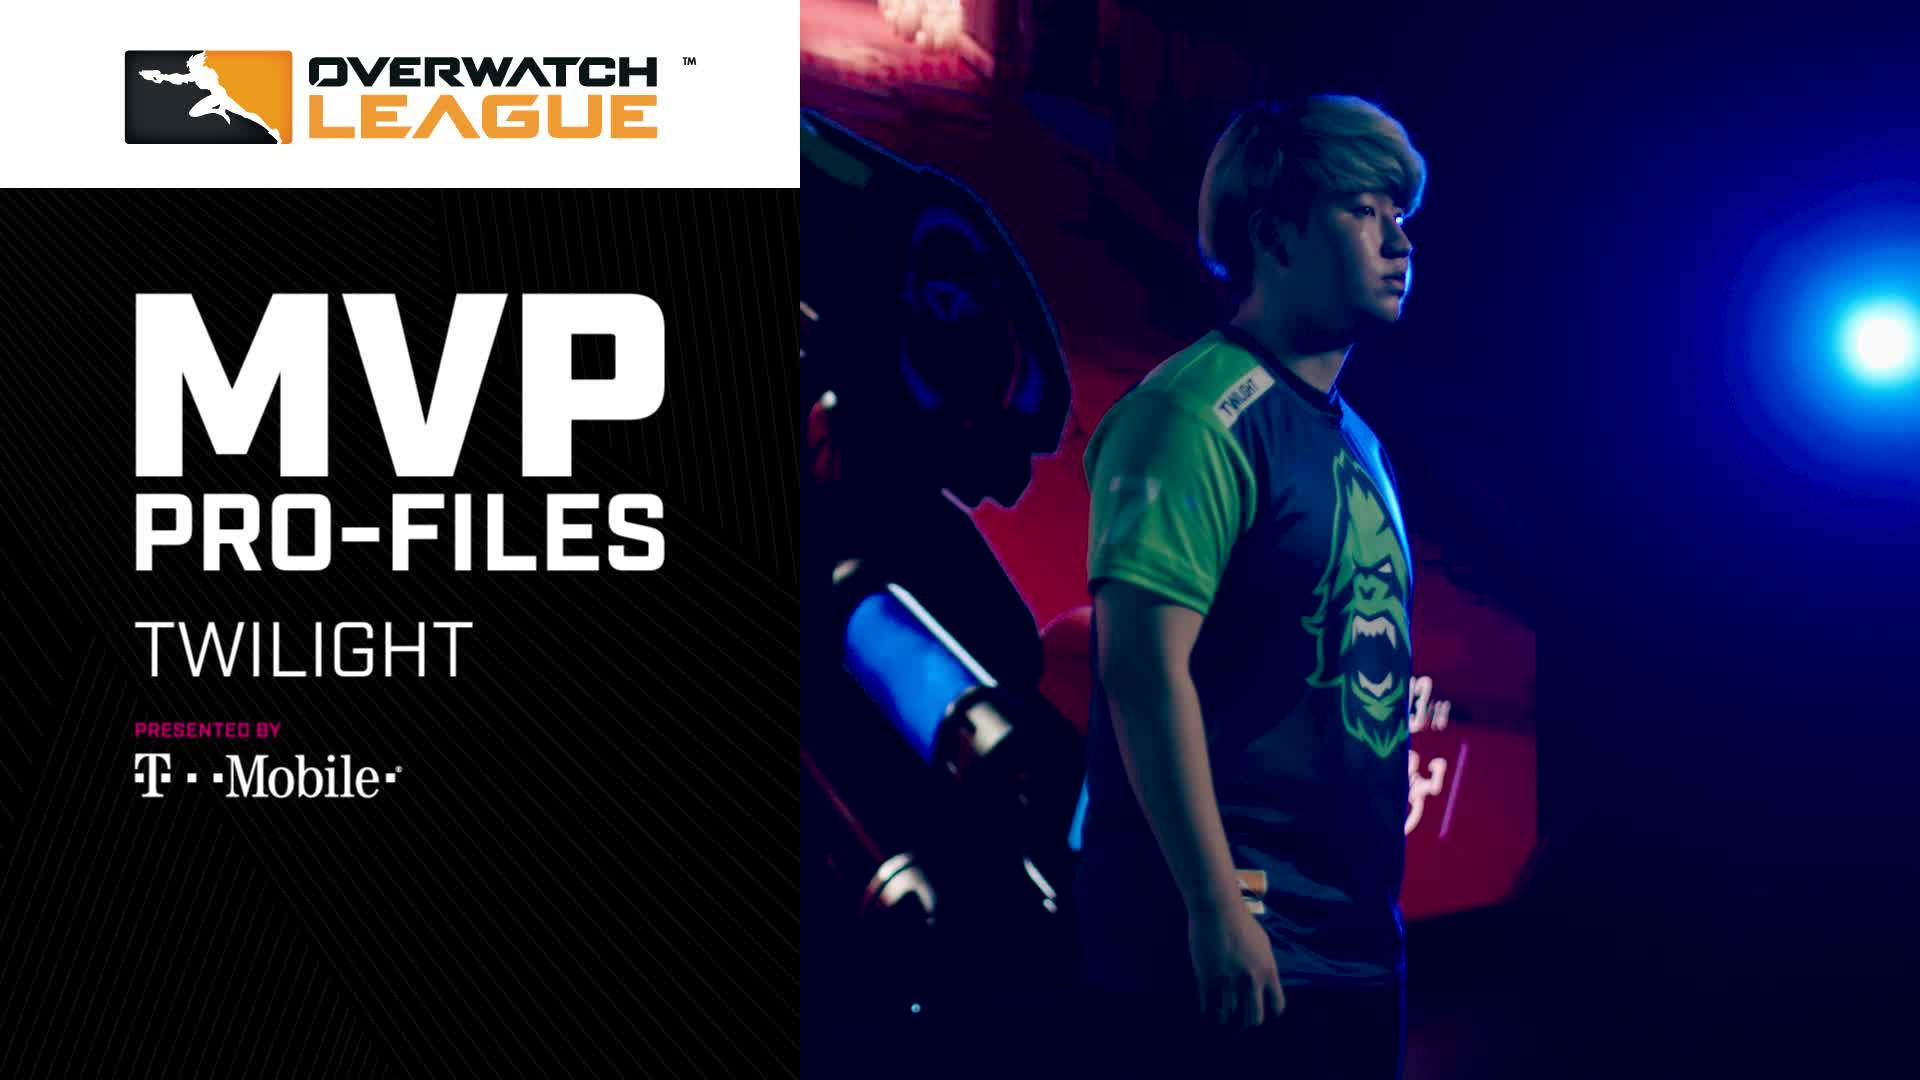 Overwatch League MVP Pro-Files: Twilight